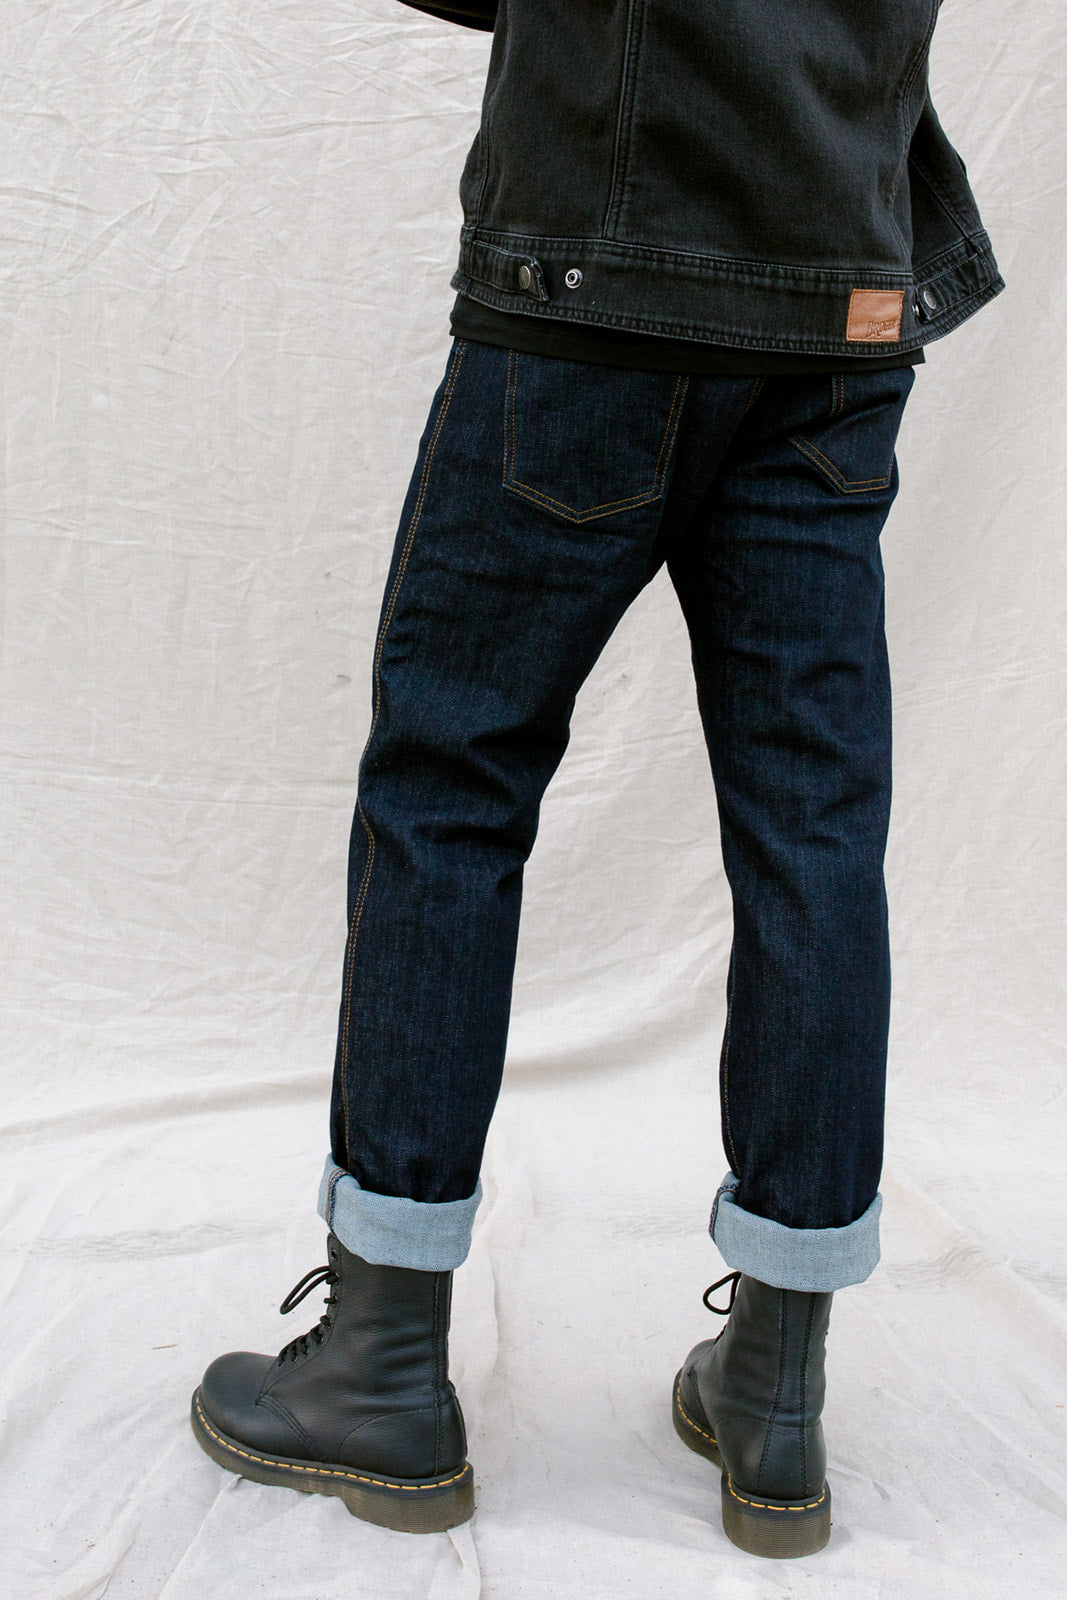 California Raw Navy Jeans - Slim Fit